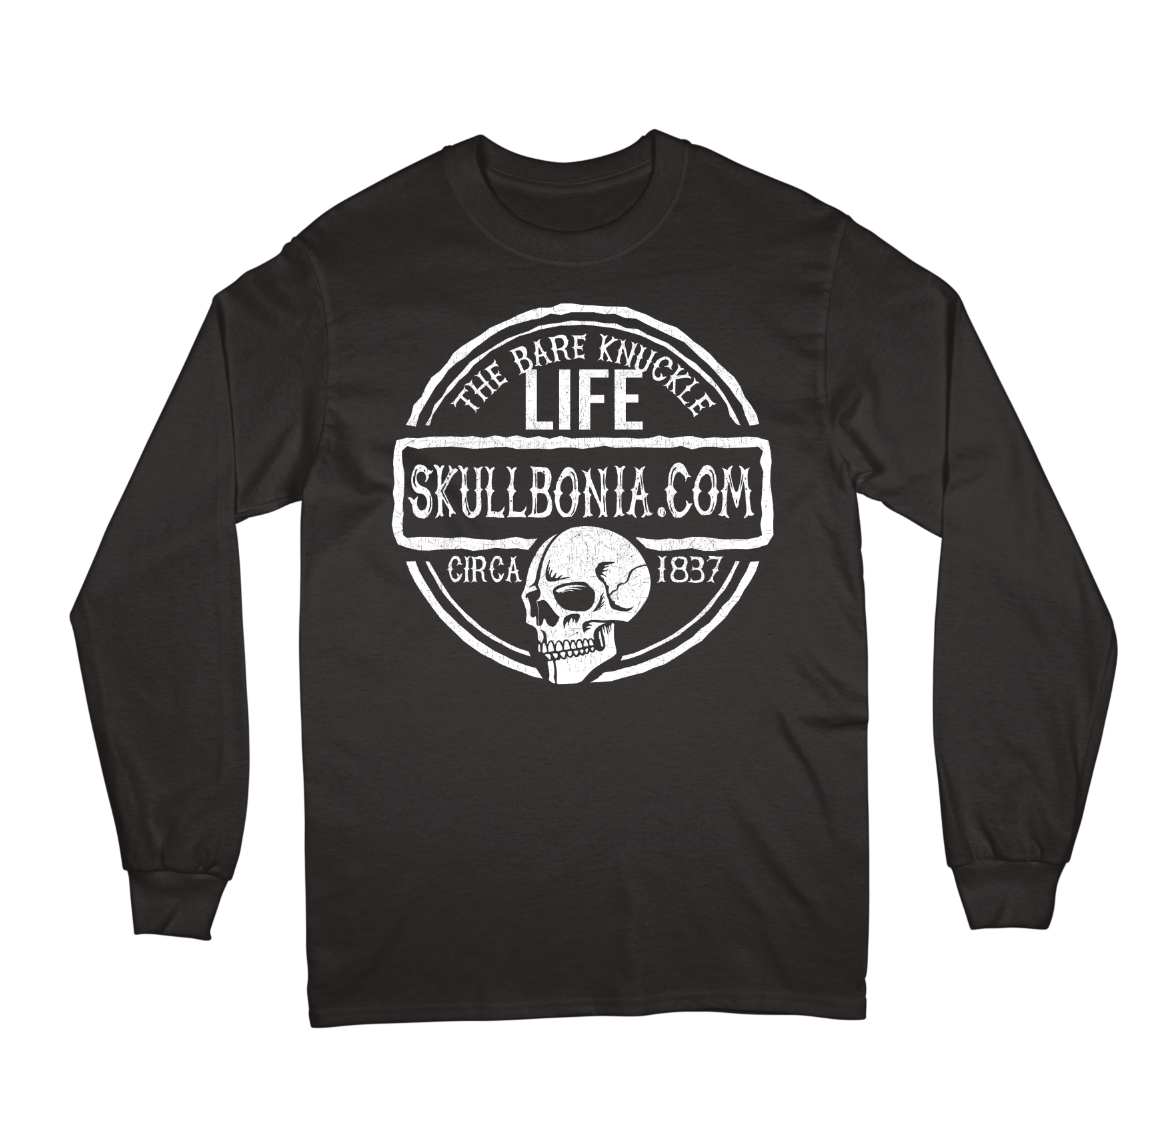 The Bare Knuckle Life Skull Long